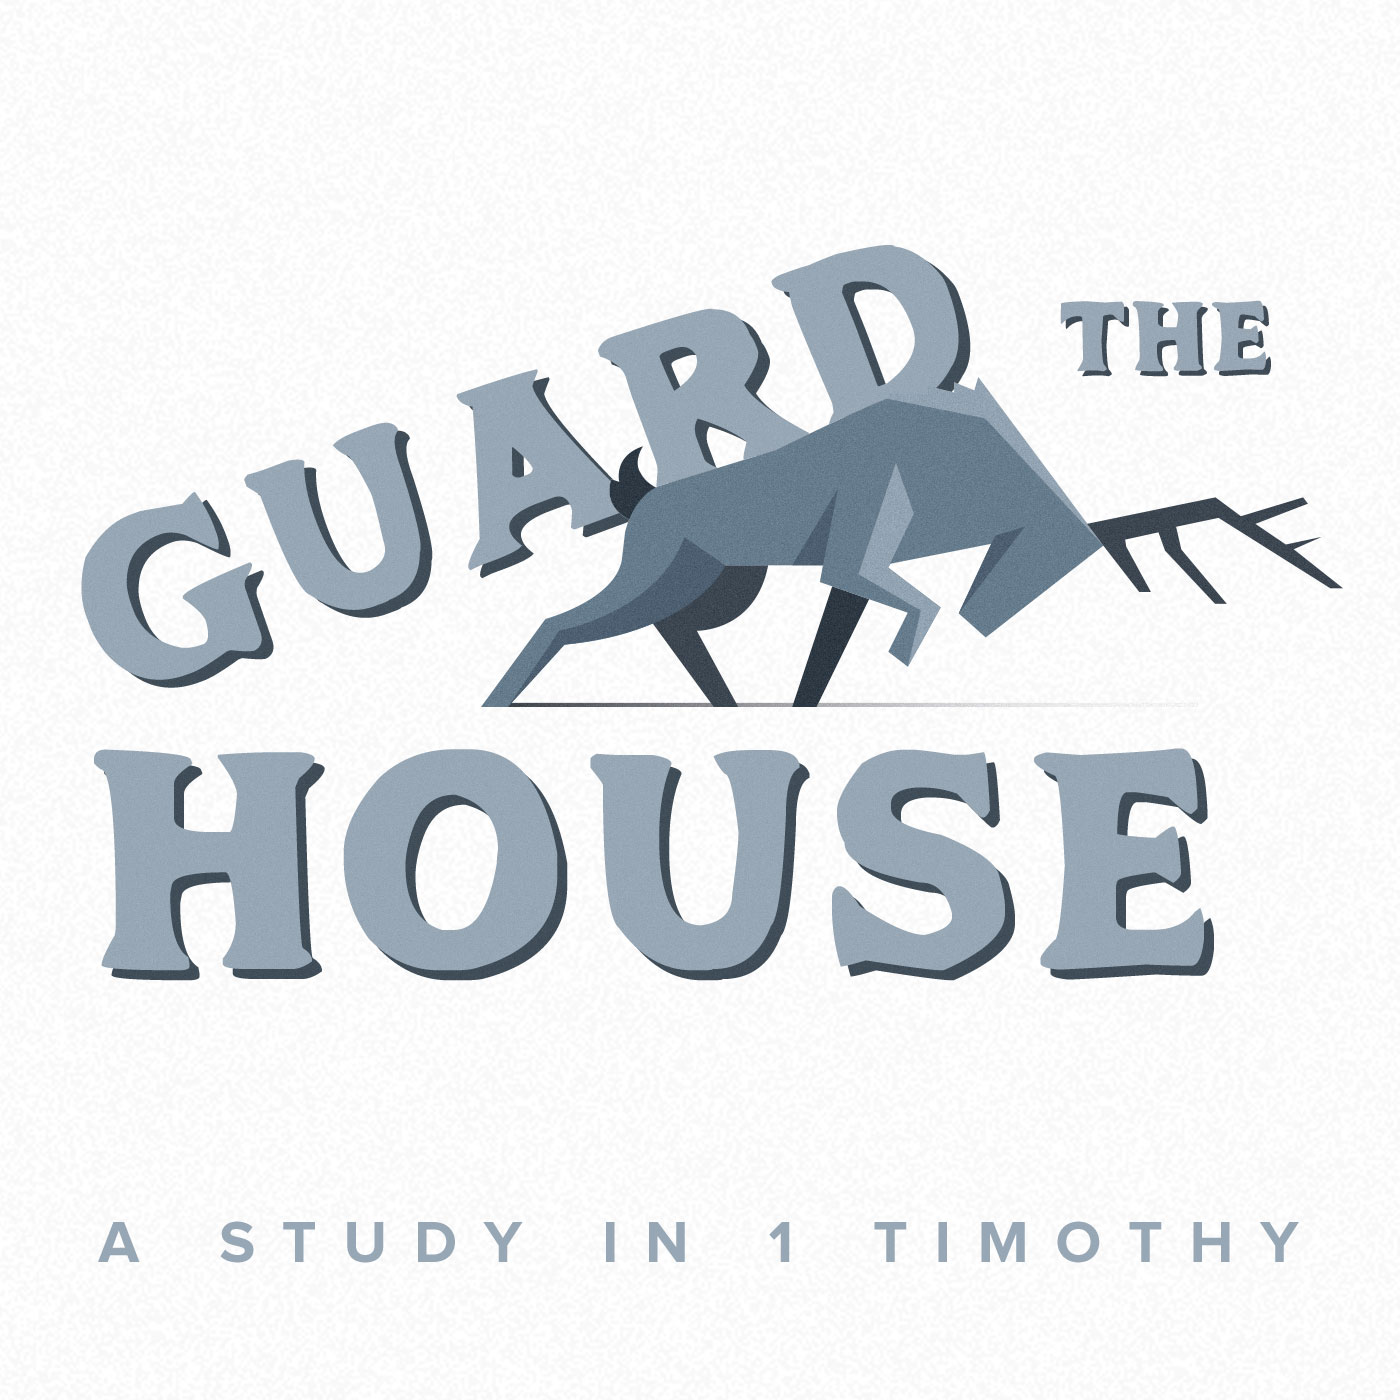 Guard the House